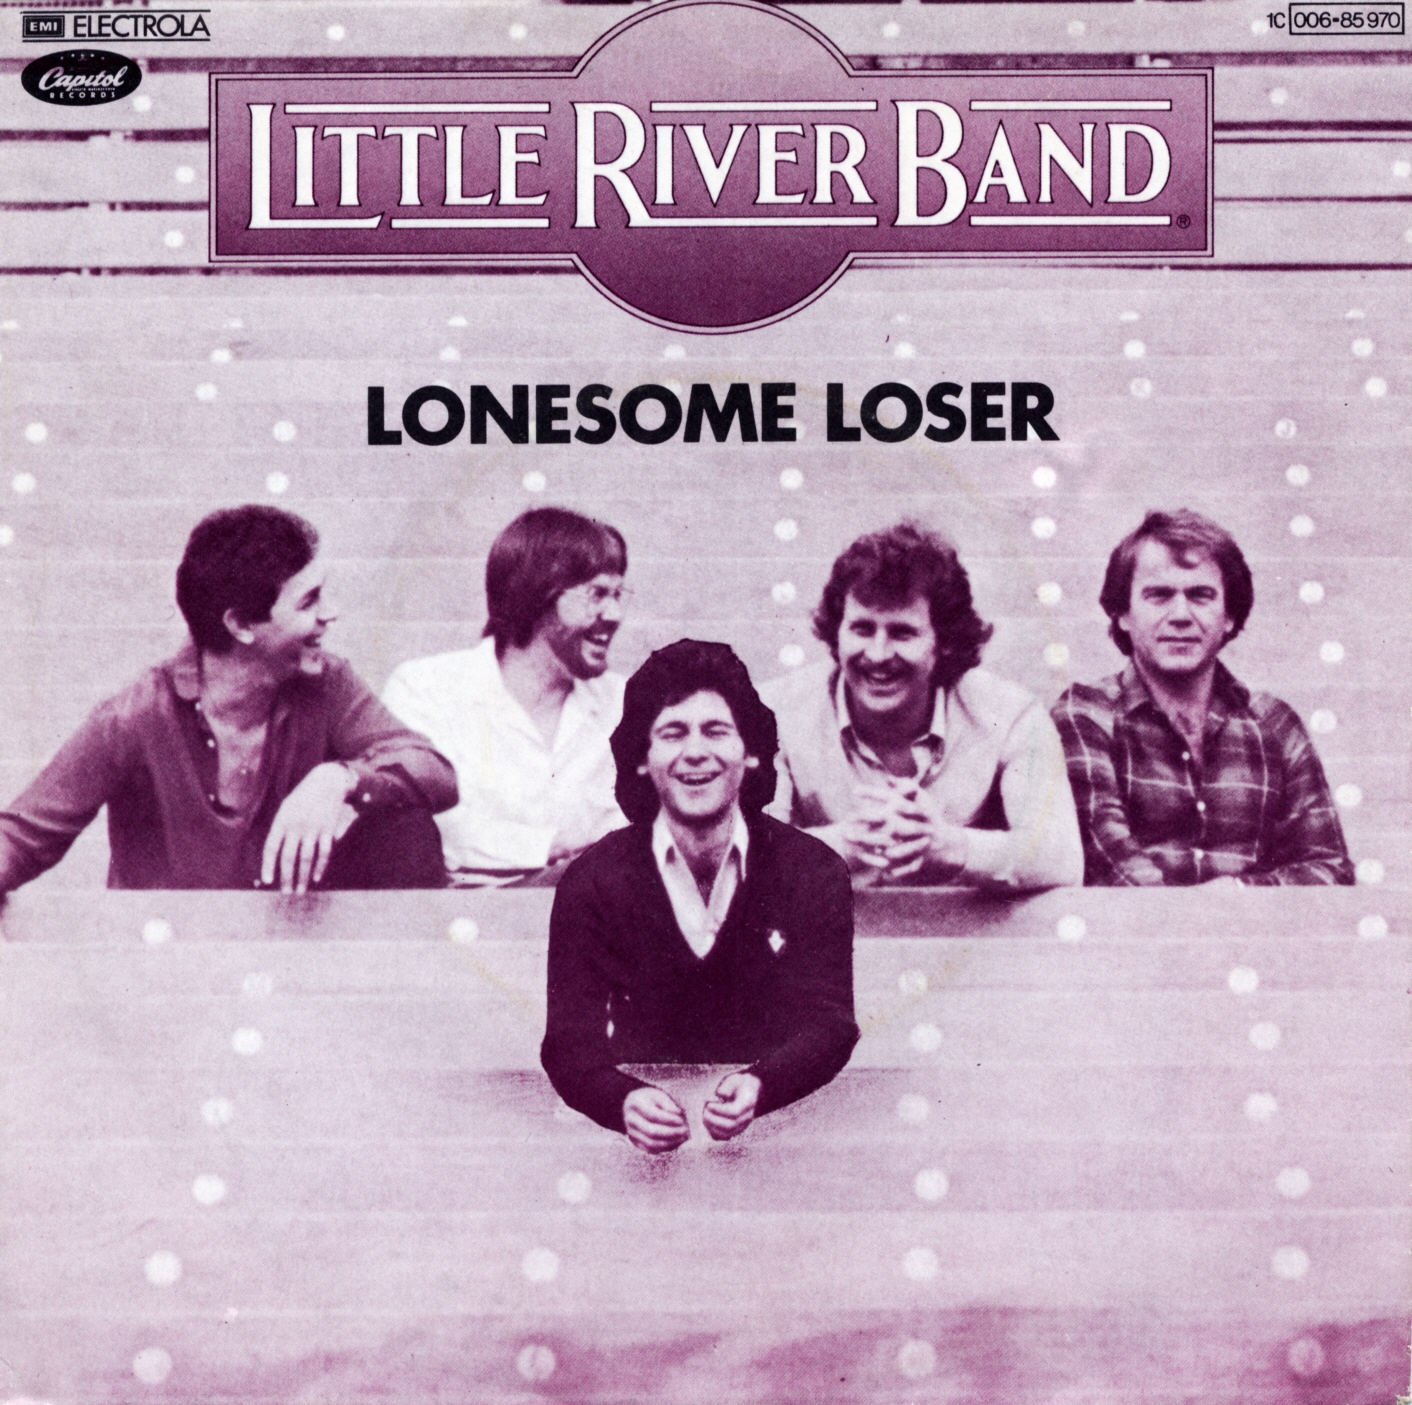 Cover: Lonesome loser, Little River Band